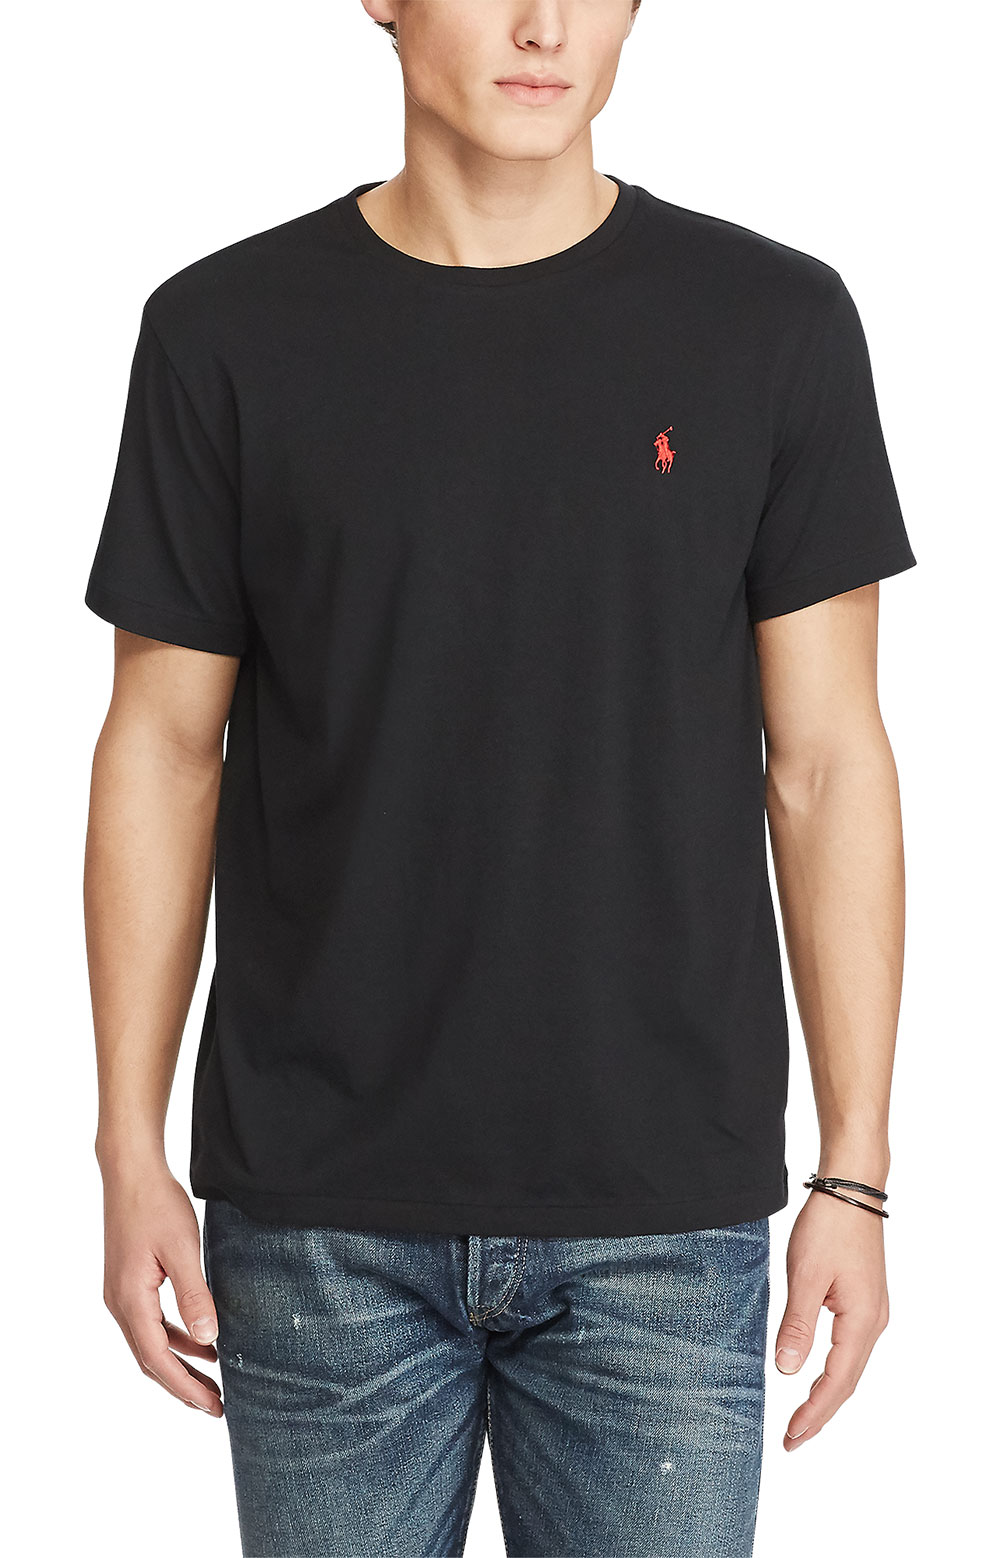 Active Fit Cotton T-Shirt - Black